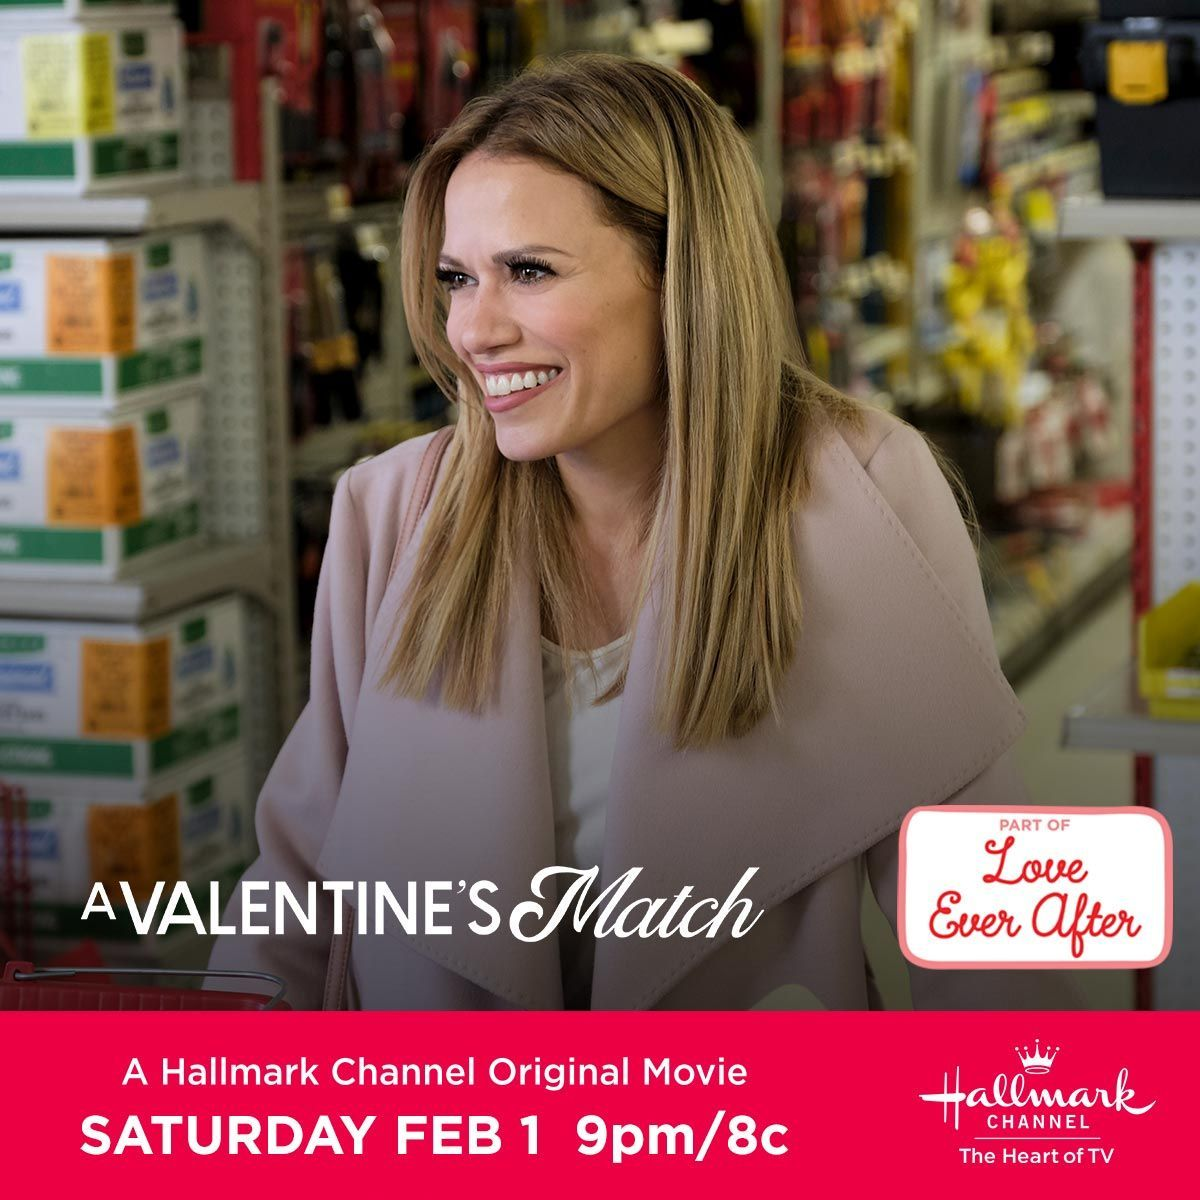 Can You Get Hallmark Channel On Hulu Bethany Joy Lenz Stars In A Valentine S Match Her Fifth Hallmarkchannel Original Movie Make A Date On February In 2020 Hallmark Hallmark Channel Bethany Joy Lenz